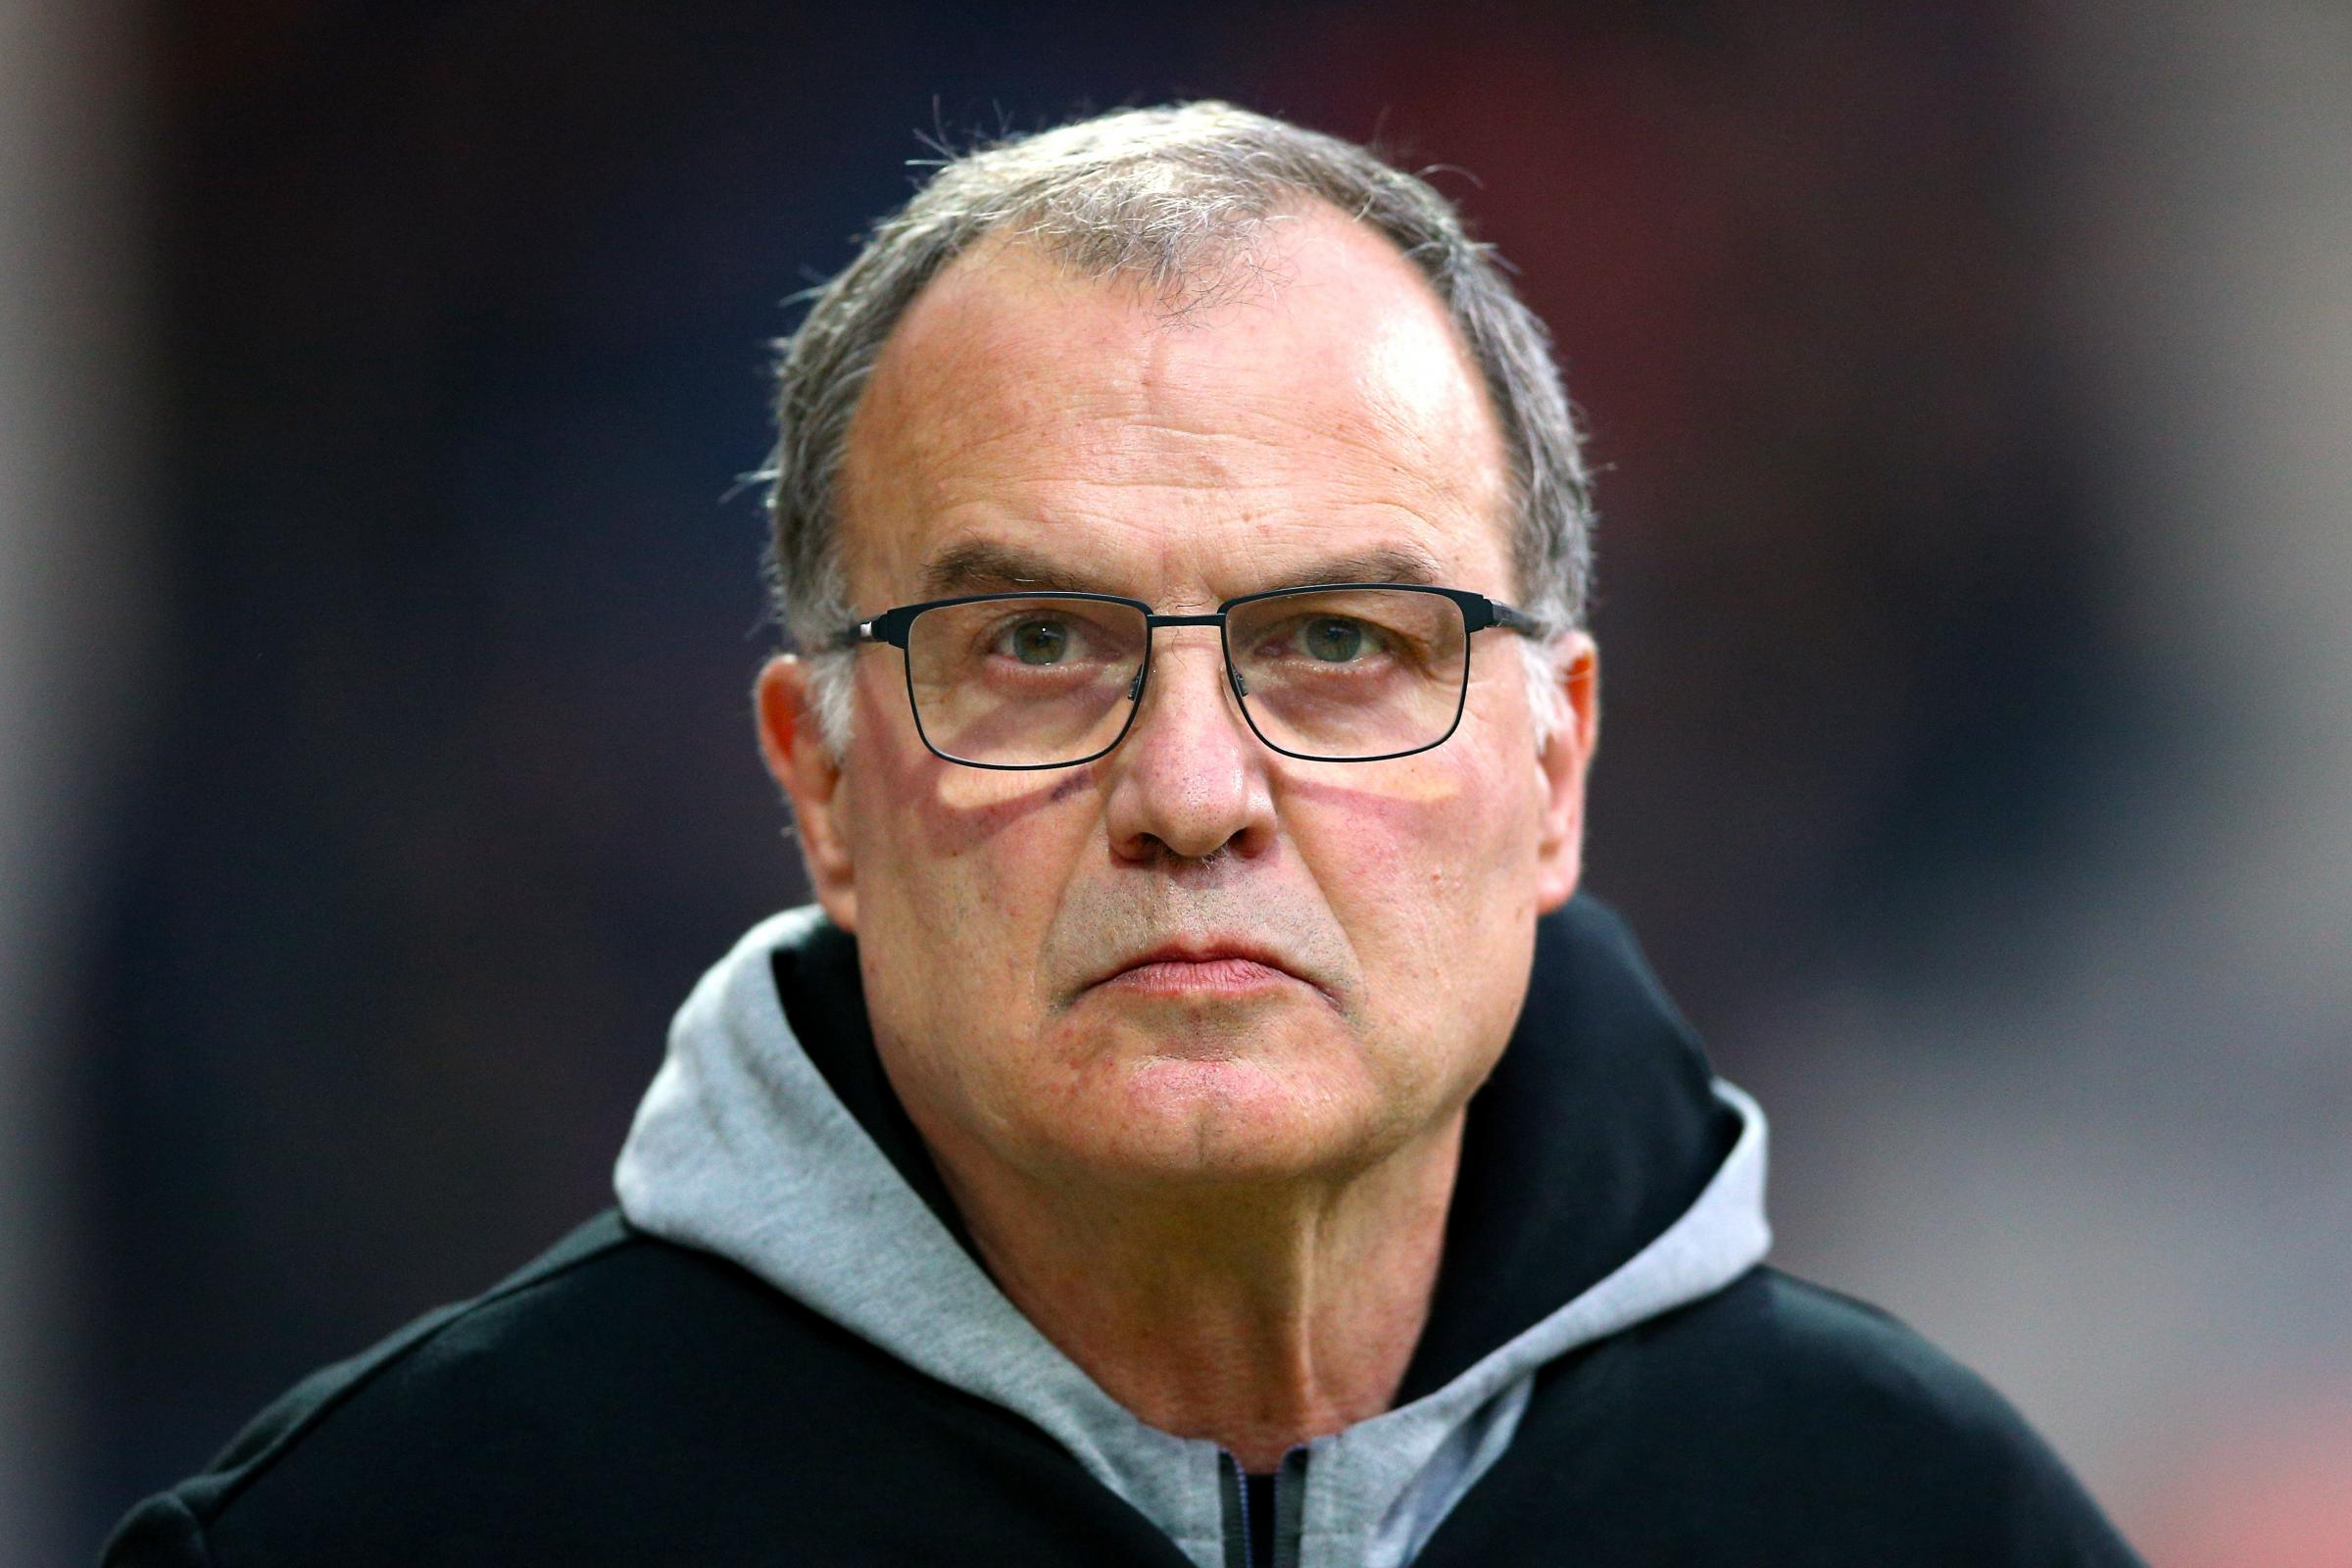 Marcelo Bielsa transformed Leeds from also-rans into serious promotion contenders